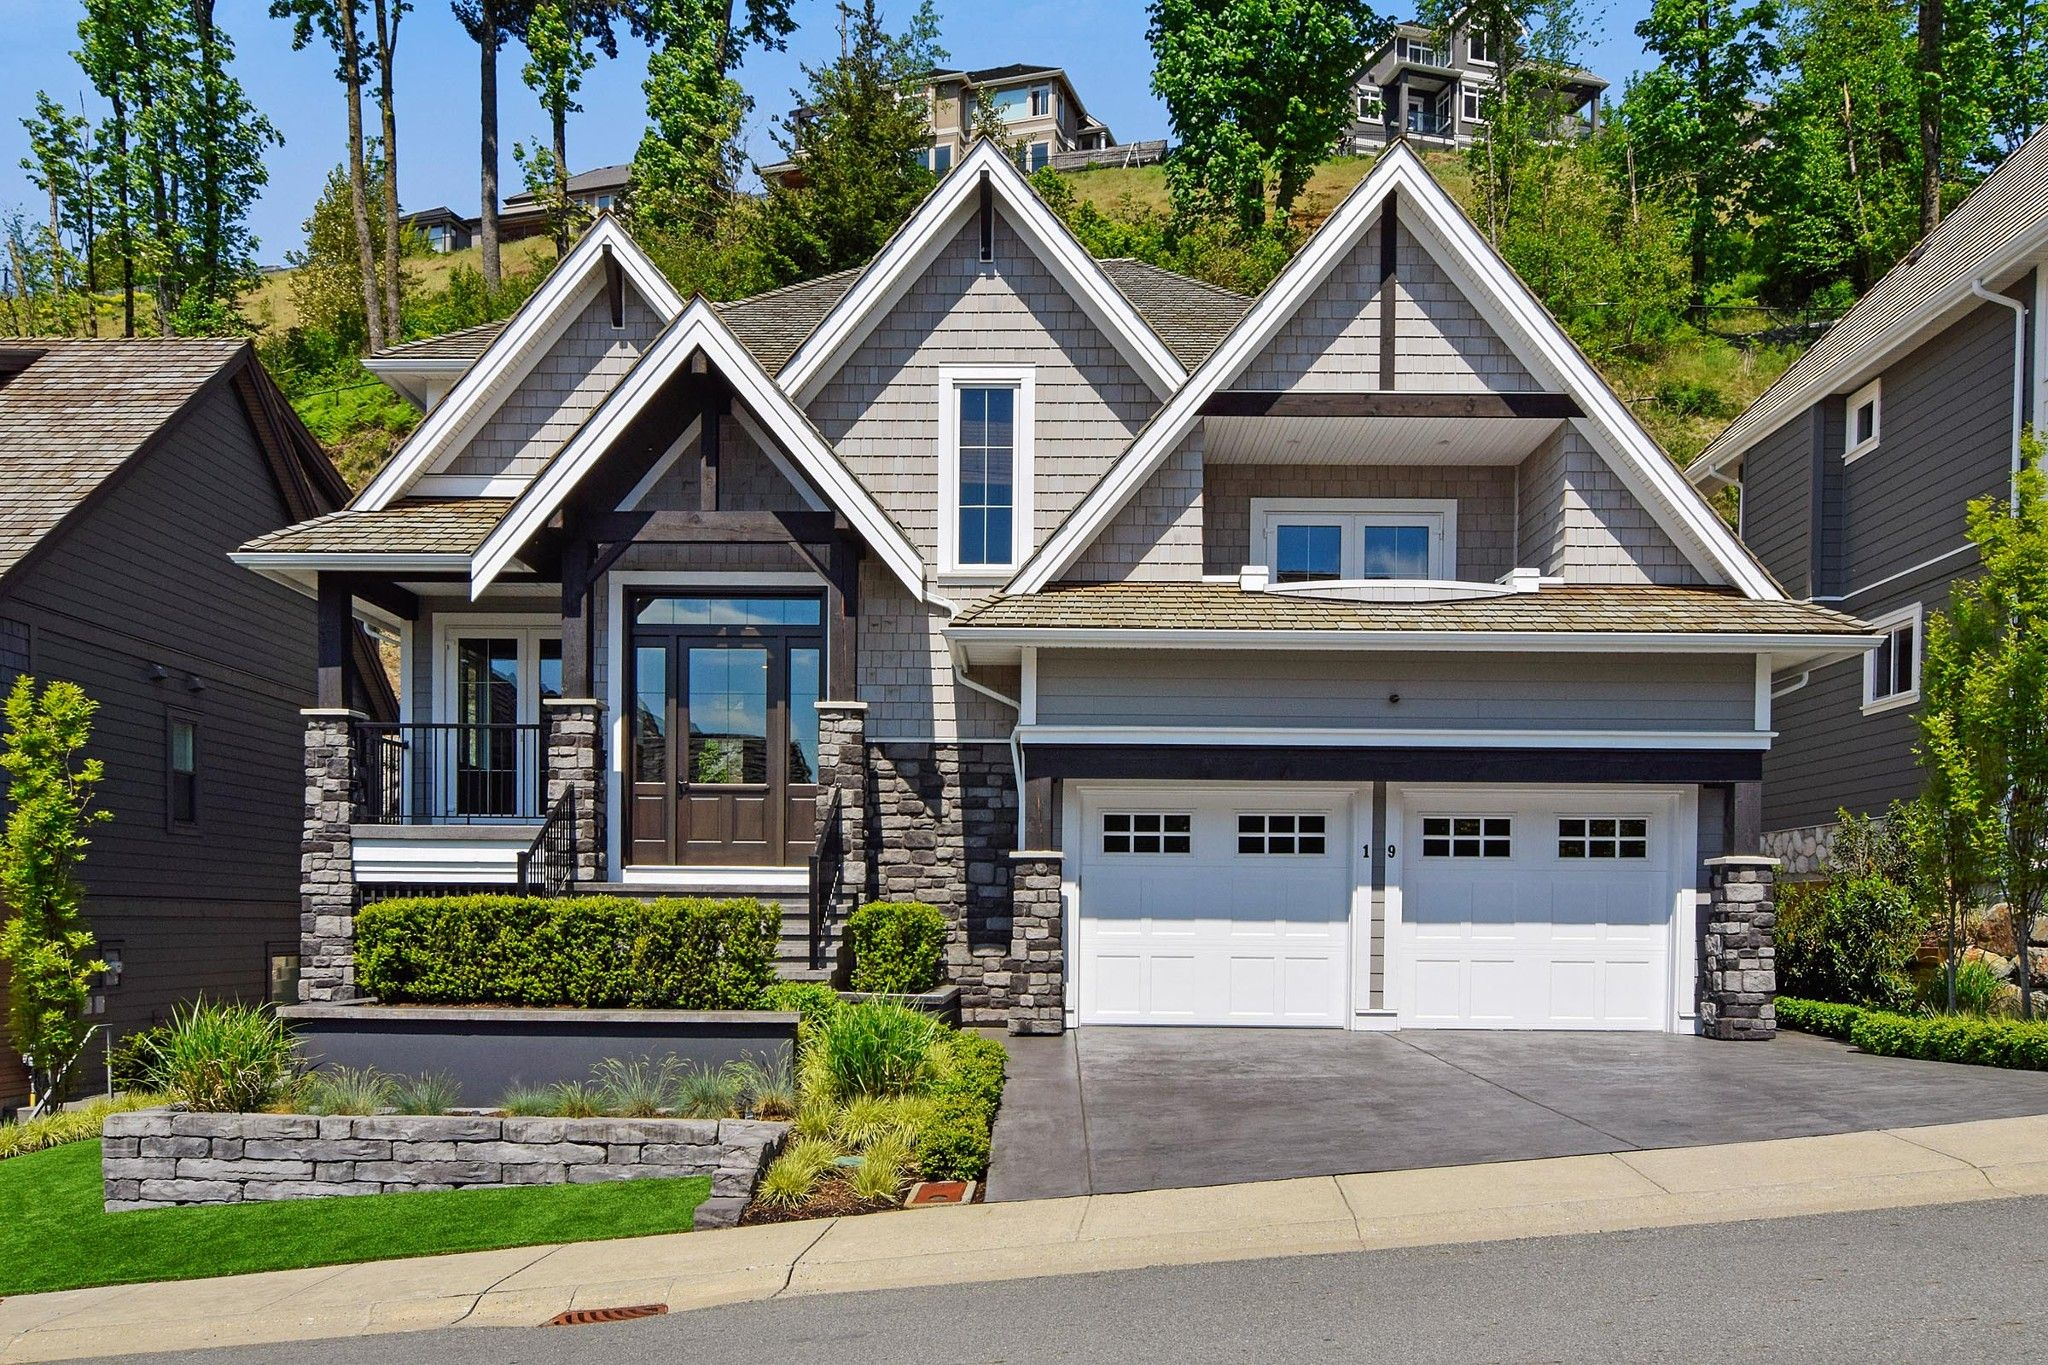 Main Photo: 19 35689 GOODBRAND Drive in Abbotsford: Abbotsford East House for sale : MLS®# R2267349